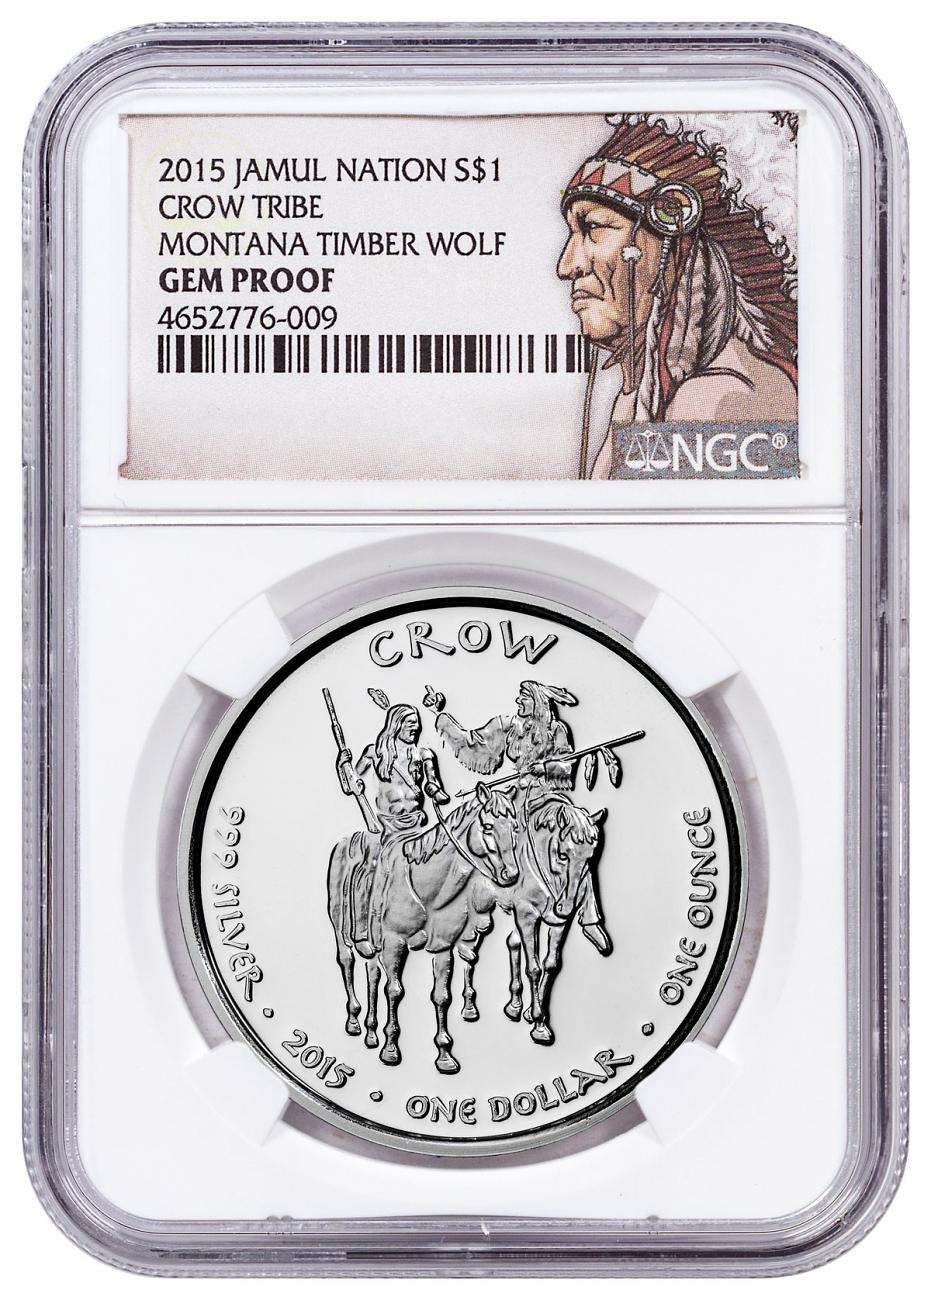 2015 Native American Silver Dollar - Montana Crow - Timber Wolf 1 oz Silver Proof Coin NGC GEM Proof Native American Label